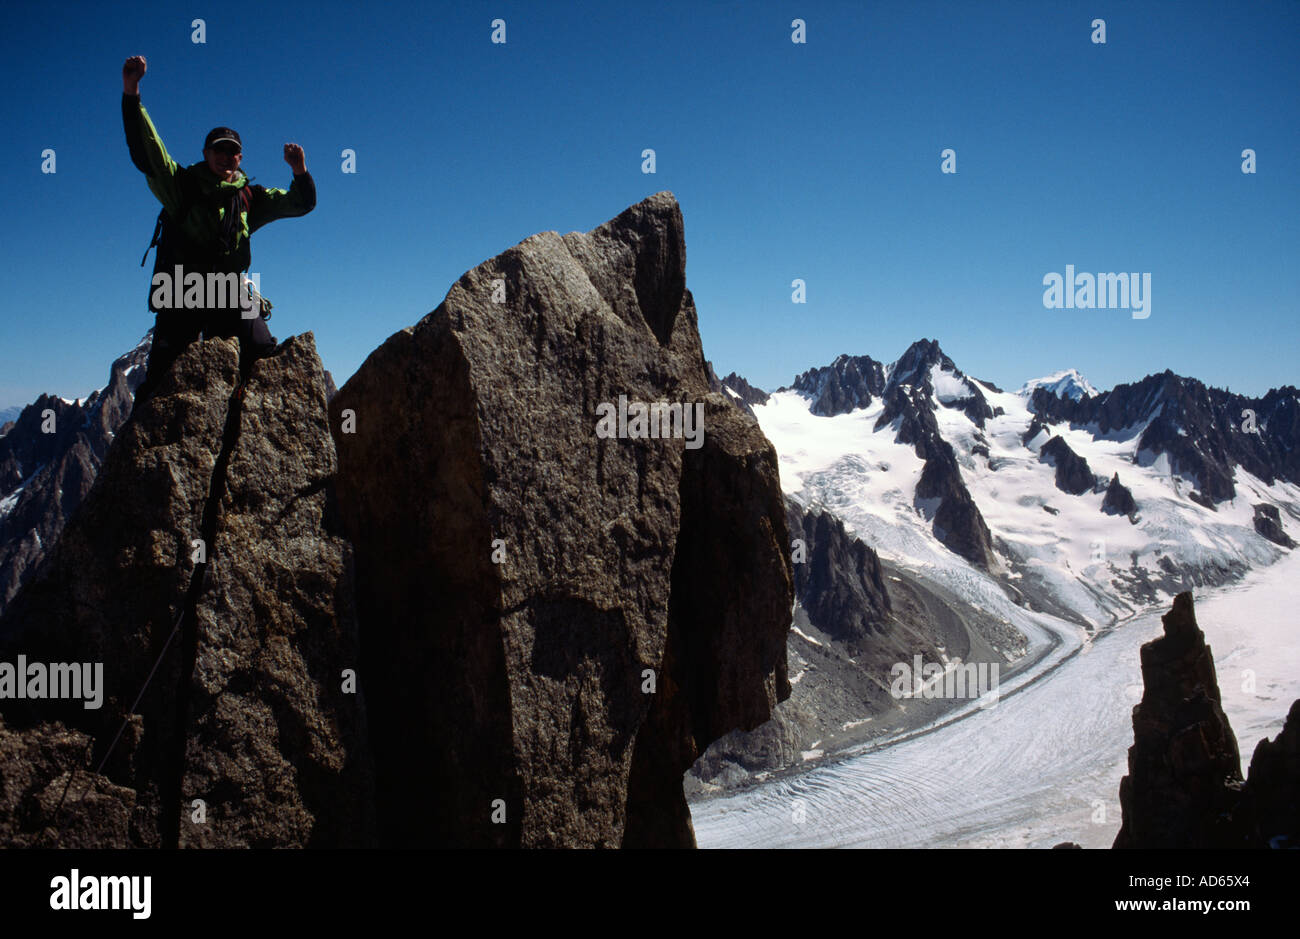 PICTURE CREDIT DOUG BLANE Richard Boud Mountaineering in Chamonix France - Stock Image